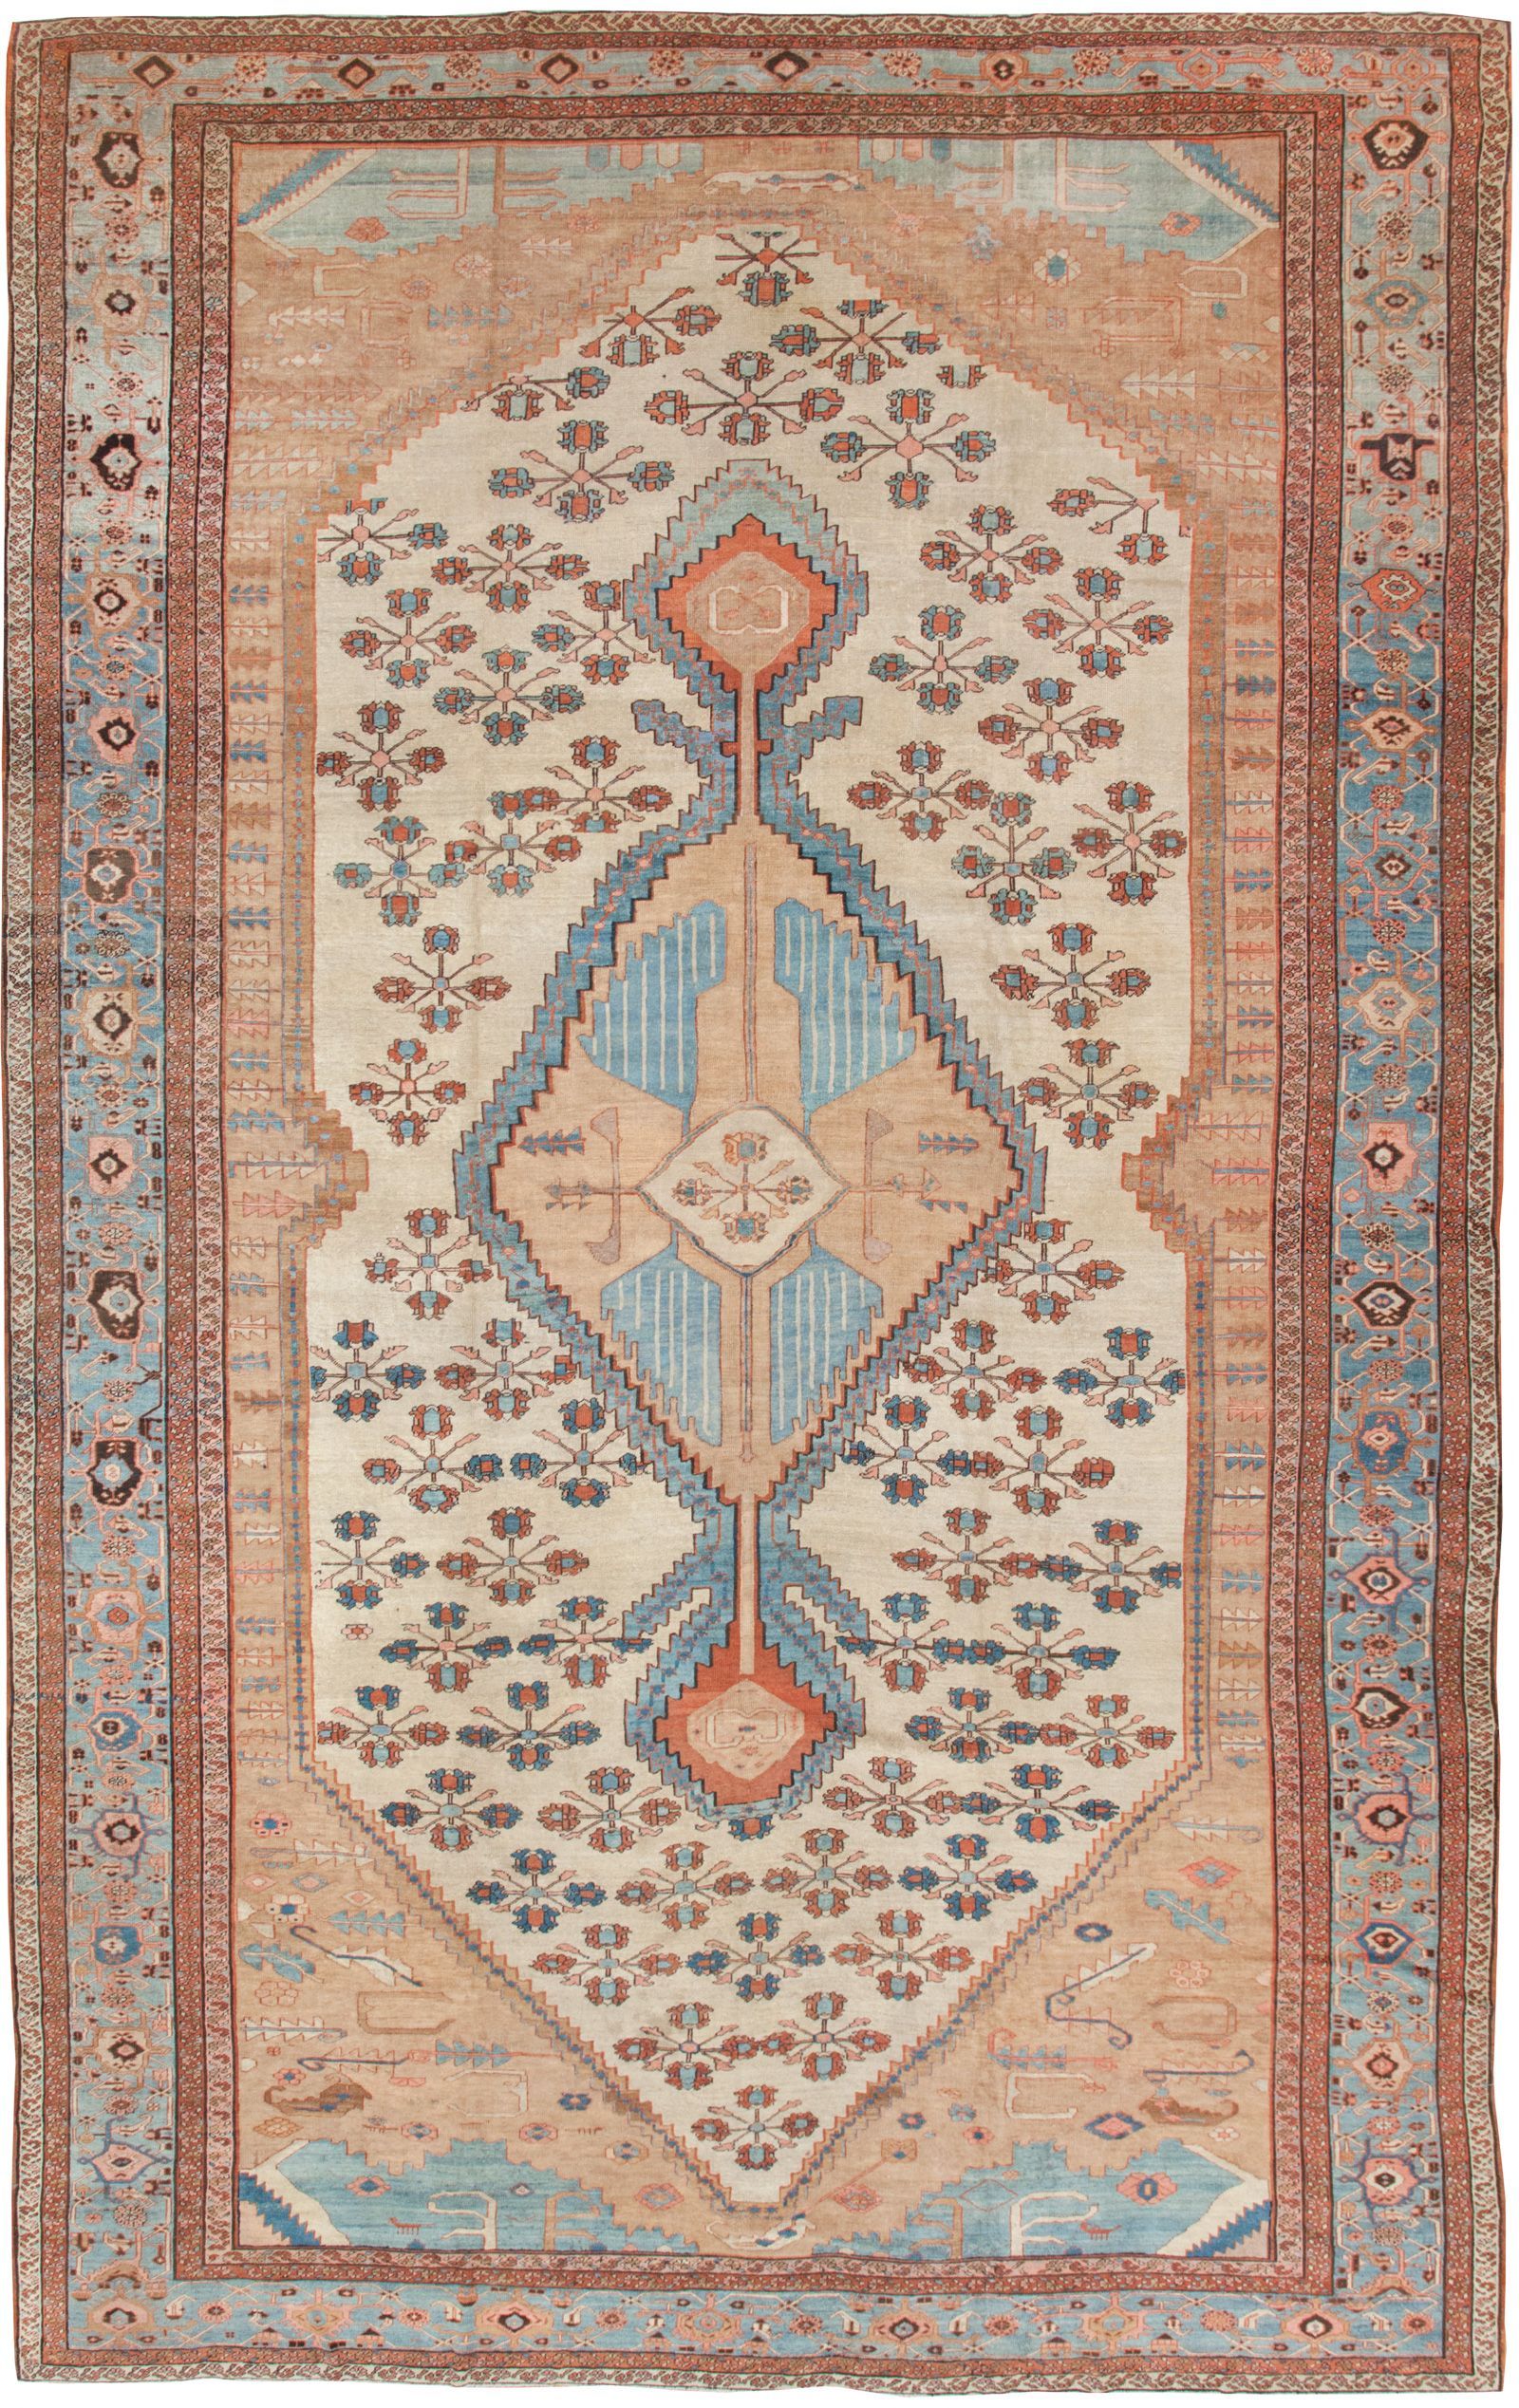 Pictures Of Antique Rugs Antique Persian Rug Rugs On Carpet Persian Rug